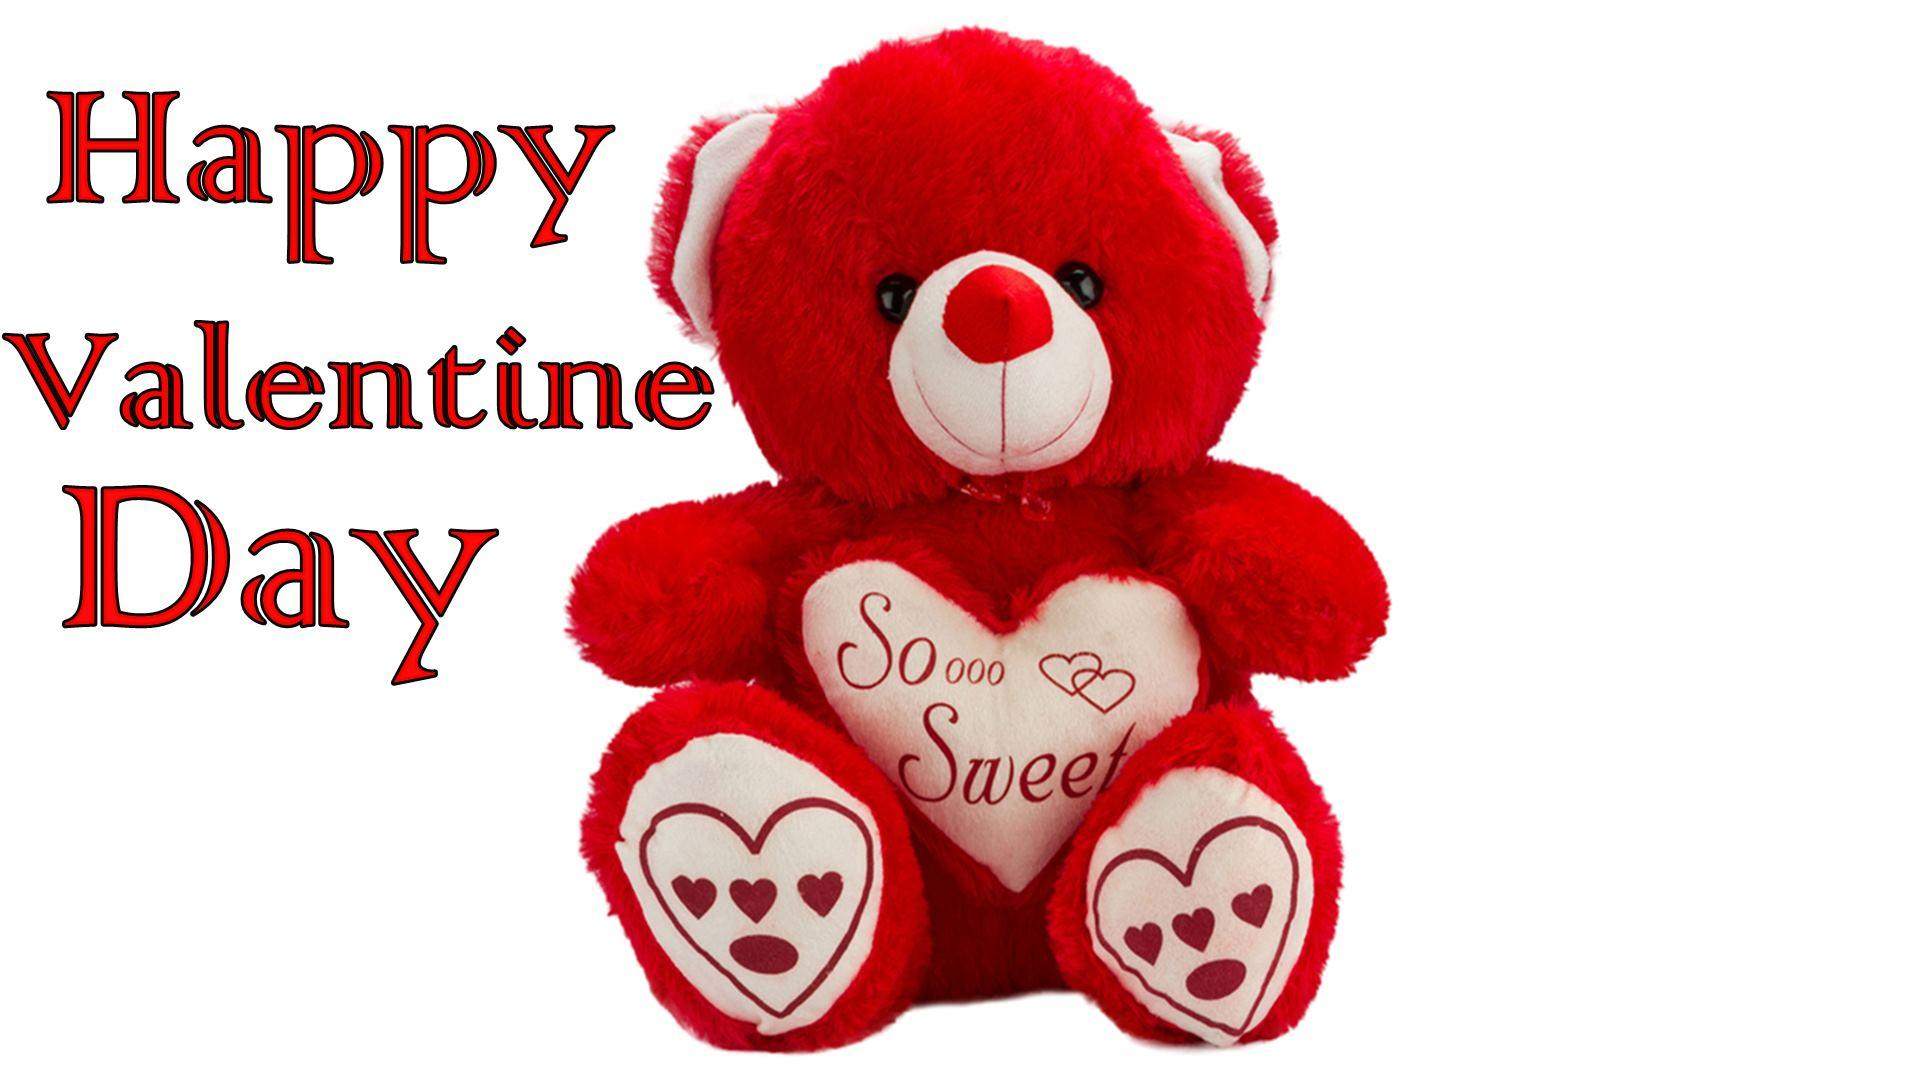 14th February Valentines Day Wishing Cards Image Pictures